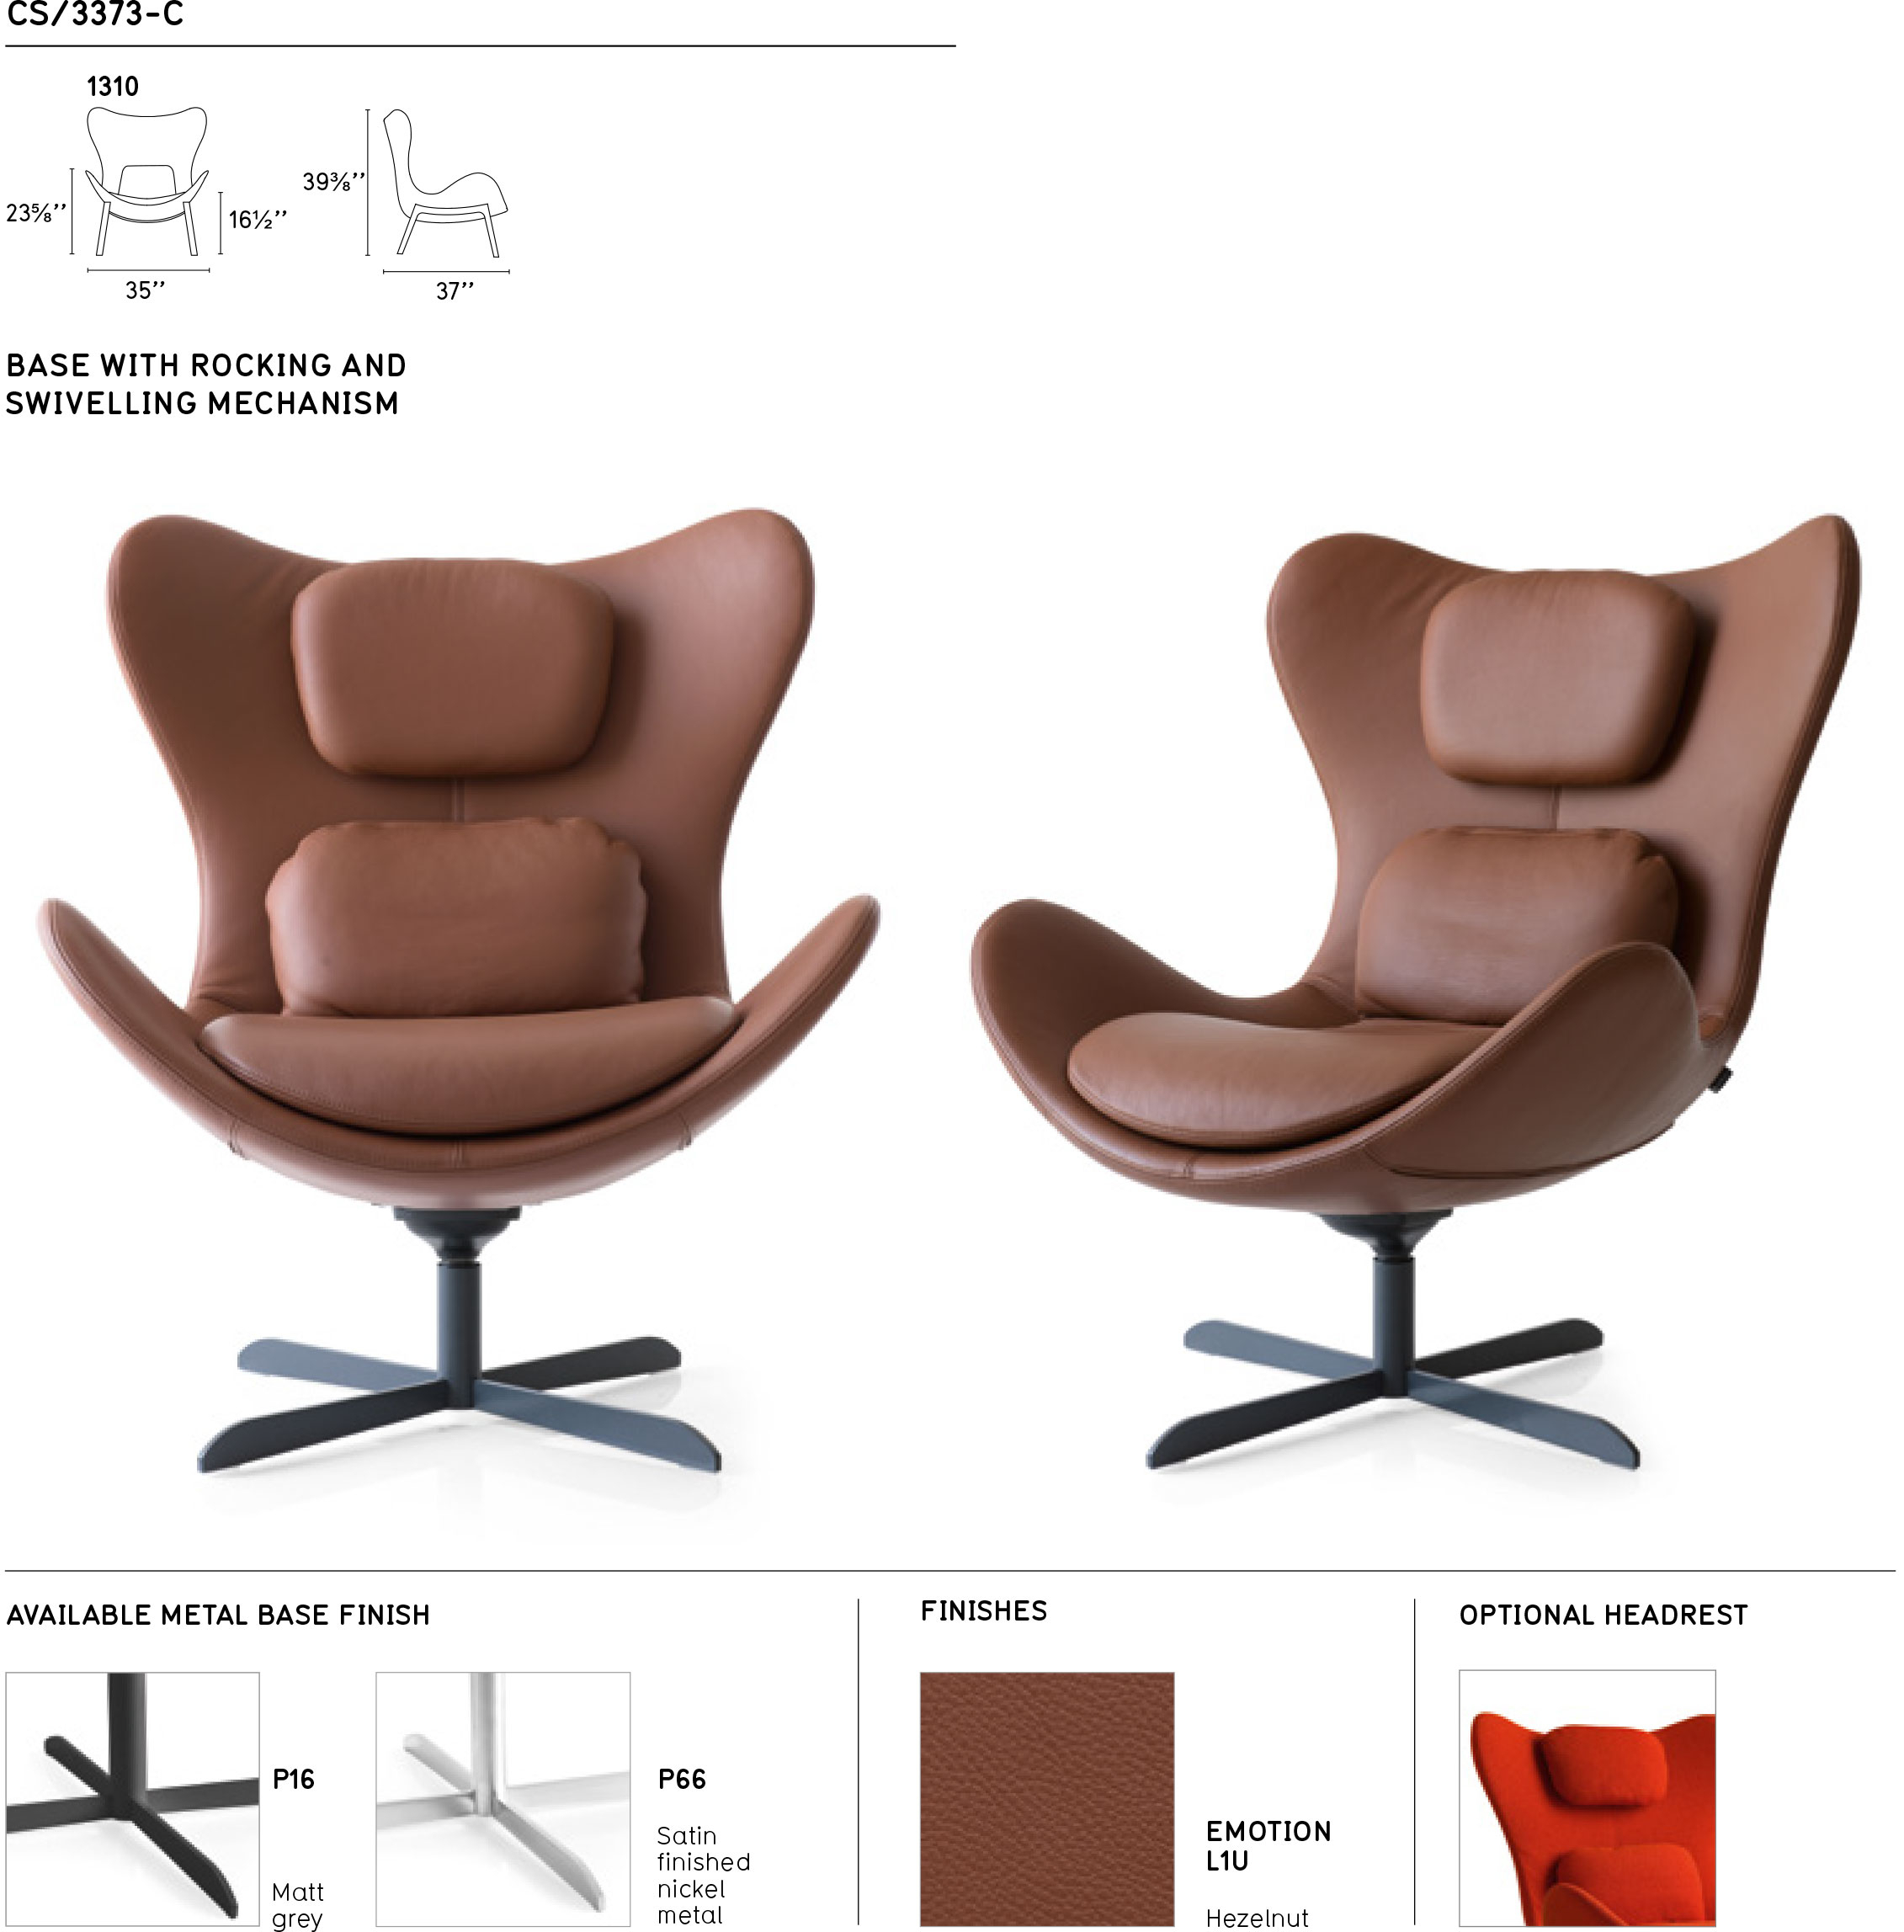 Lazy Cs/3373 C 1310 Swinging Swivel Chaircalligaris, Italy Pertaining To Chill Swivel Chairs With Metal Base (Photo 8 of 20)